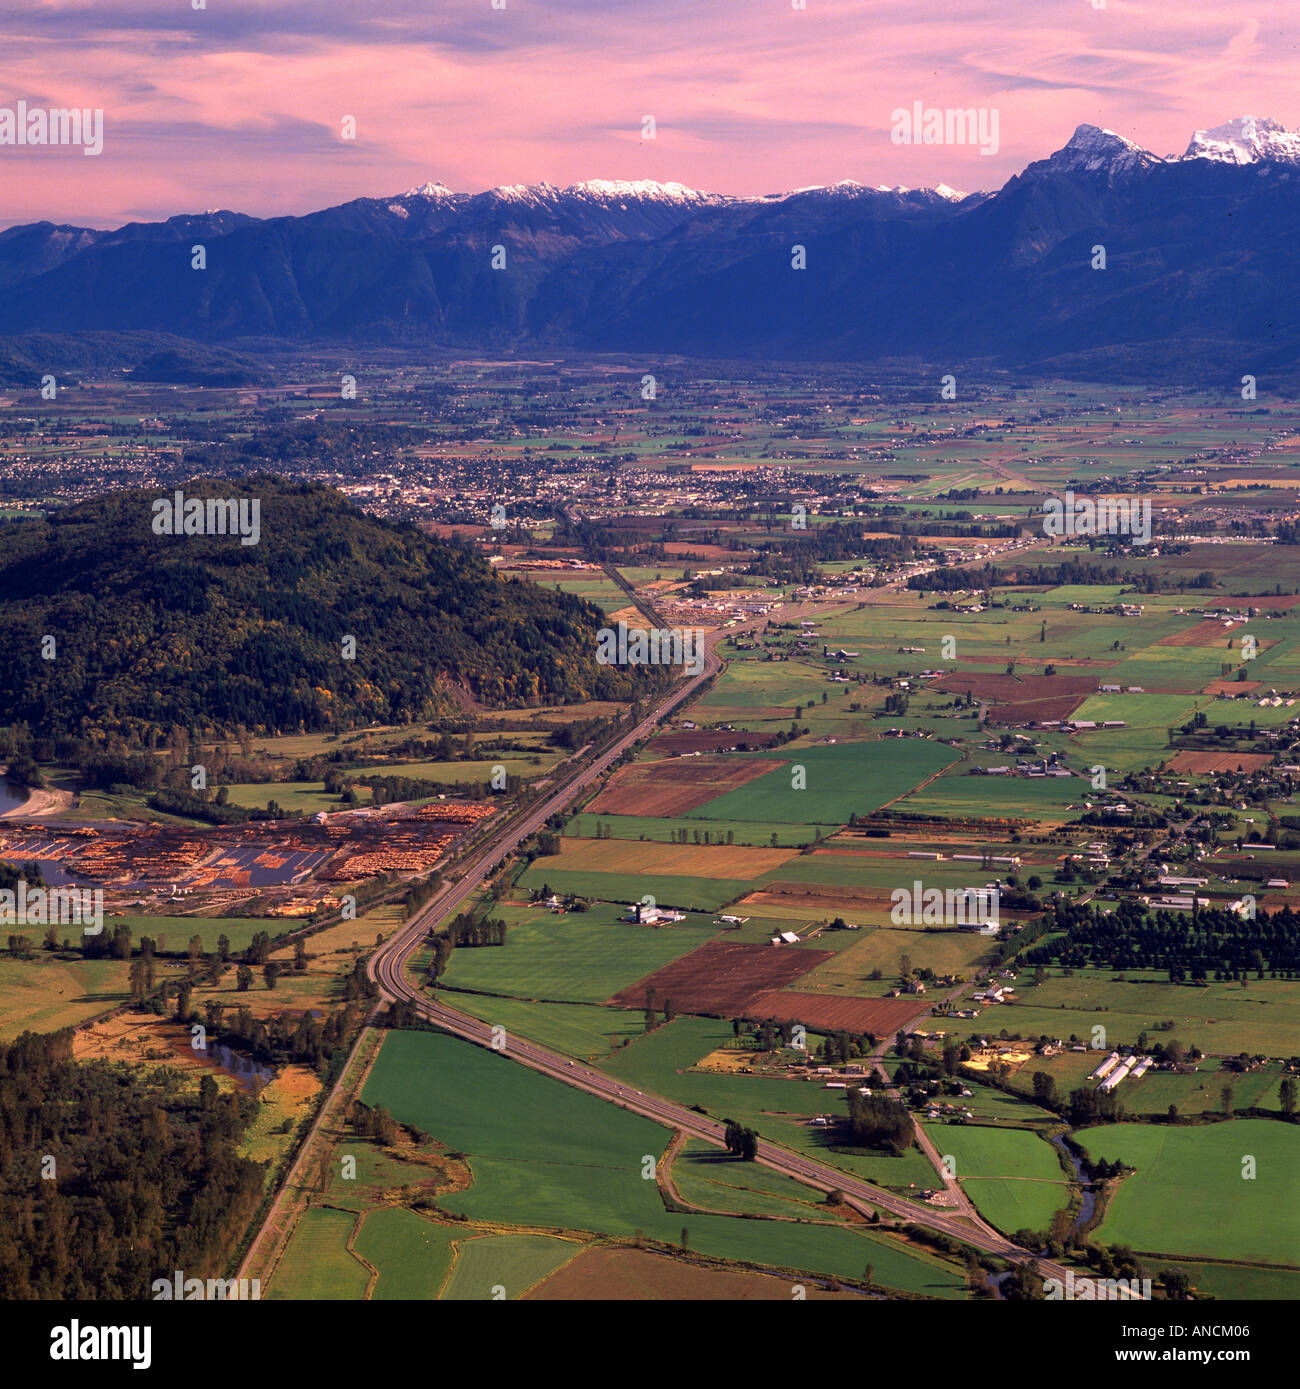 An Aerial View of the Trans Canada Highway 1 running through the Fraser Valley in British Columbia Canada - Stock Image